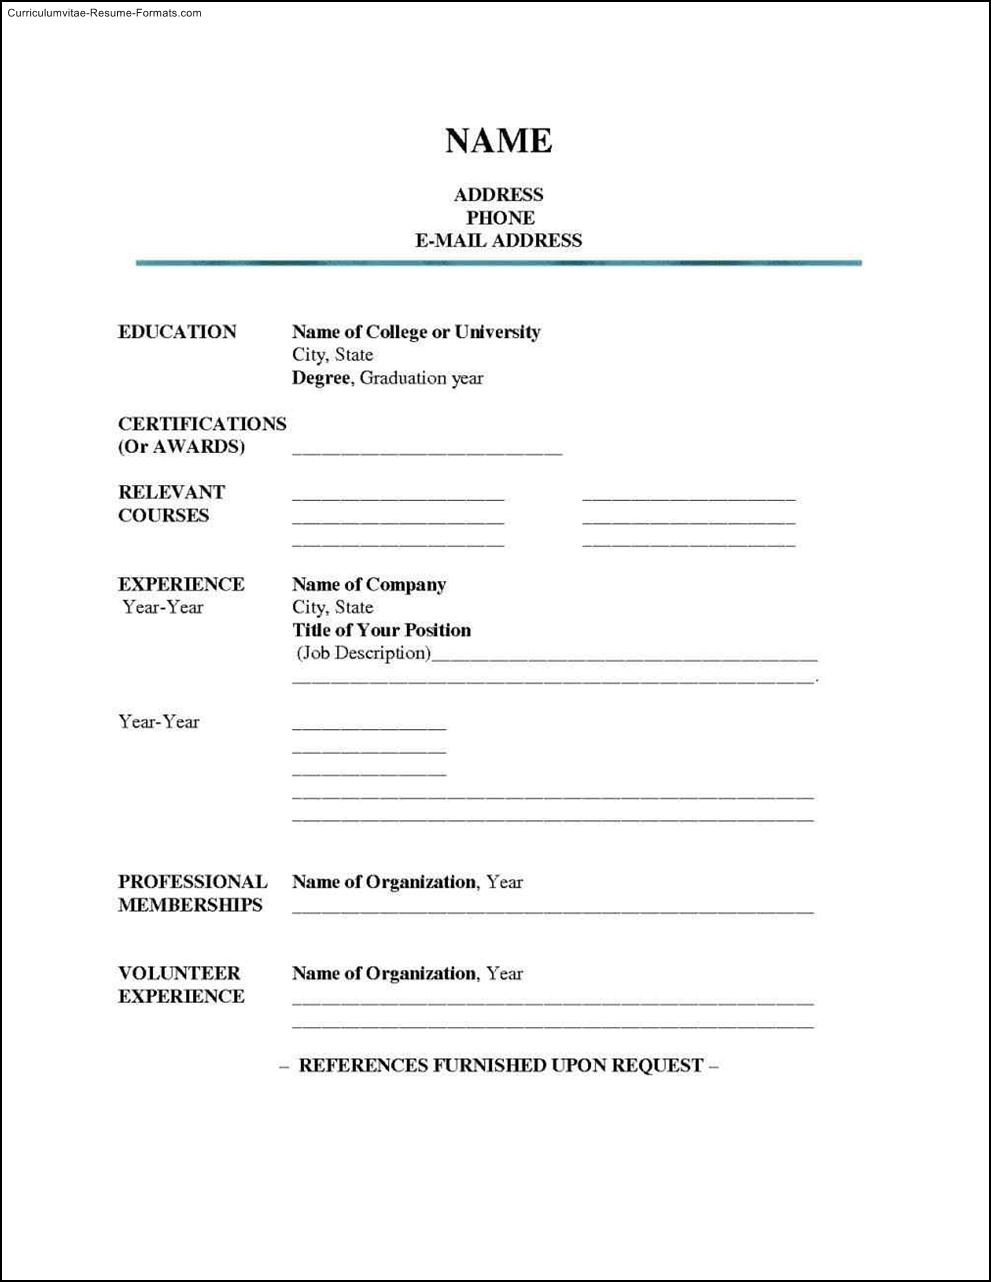 high school resume template microsoft word high school resume template microsoft word free samples 22115